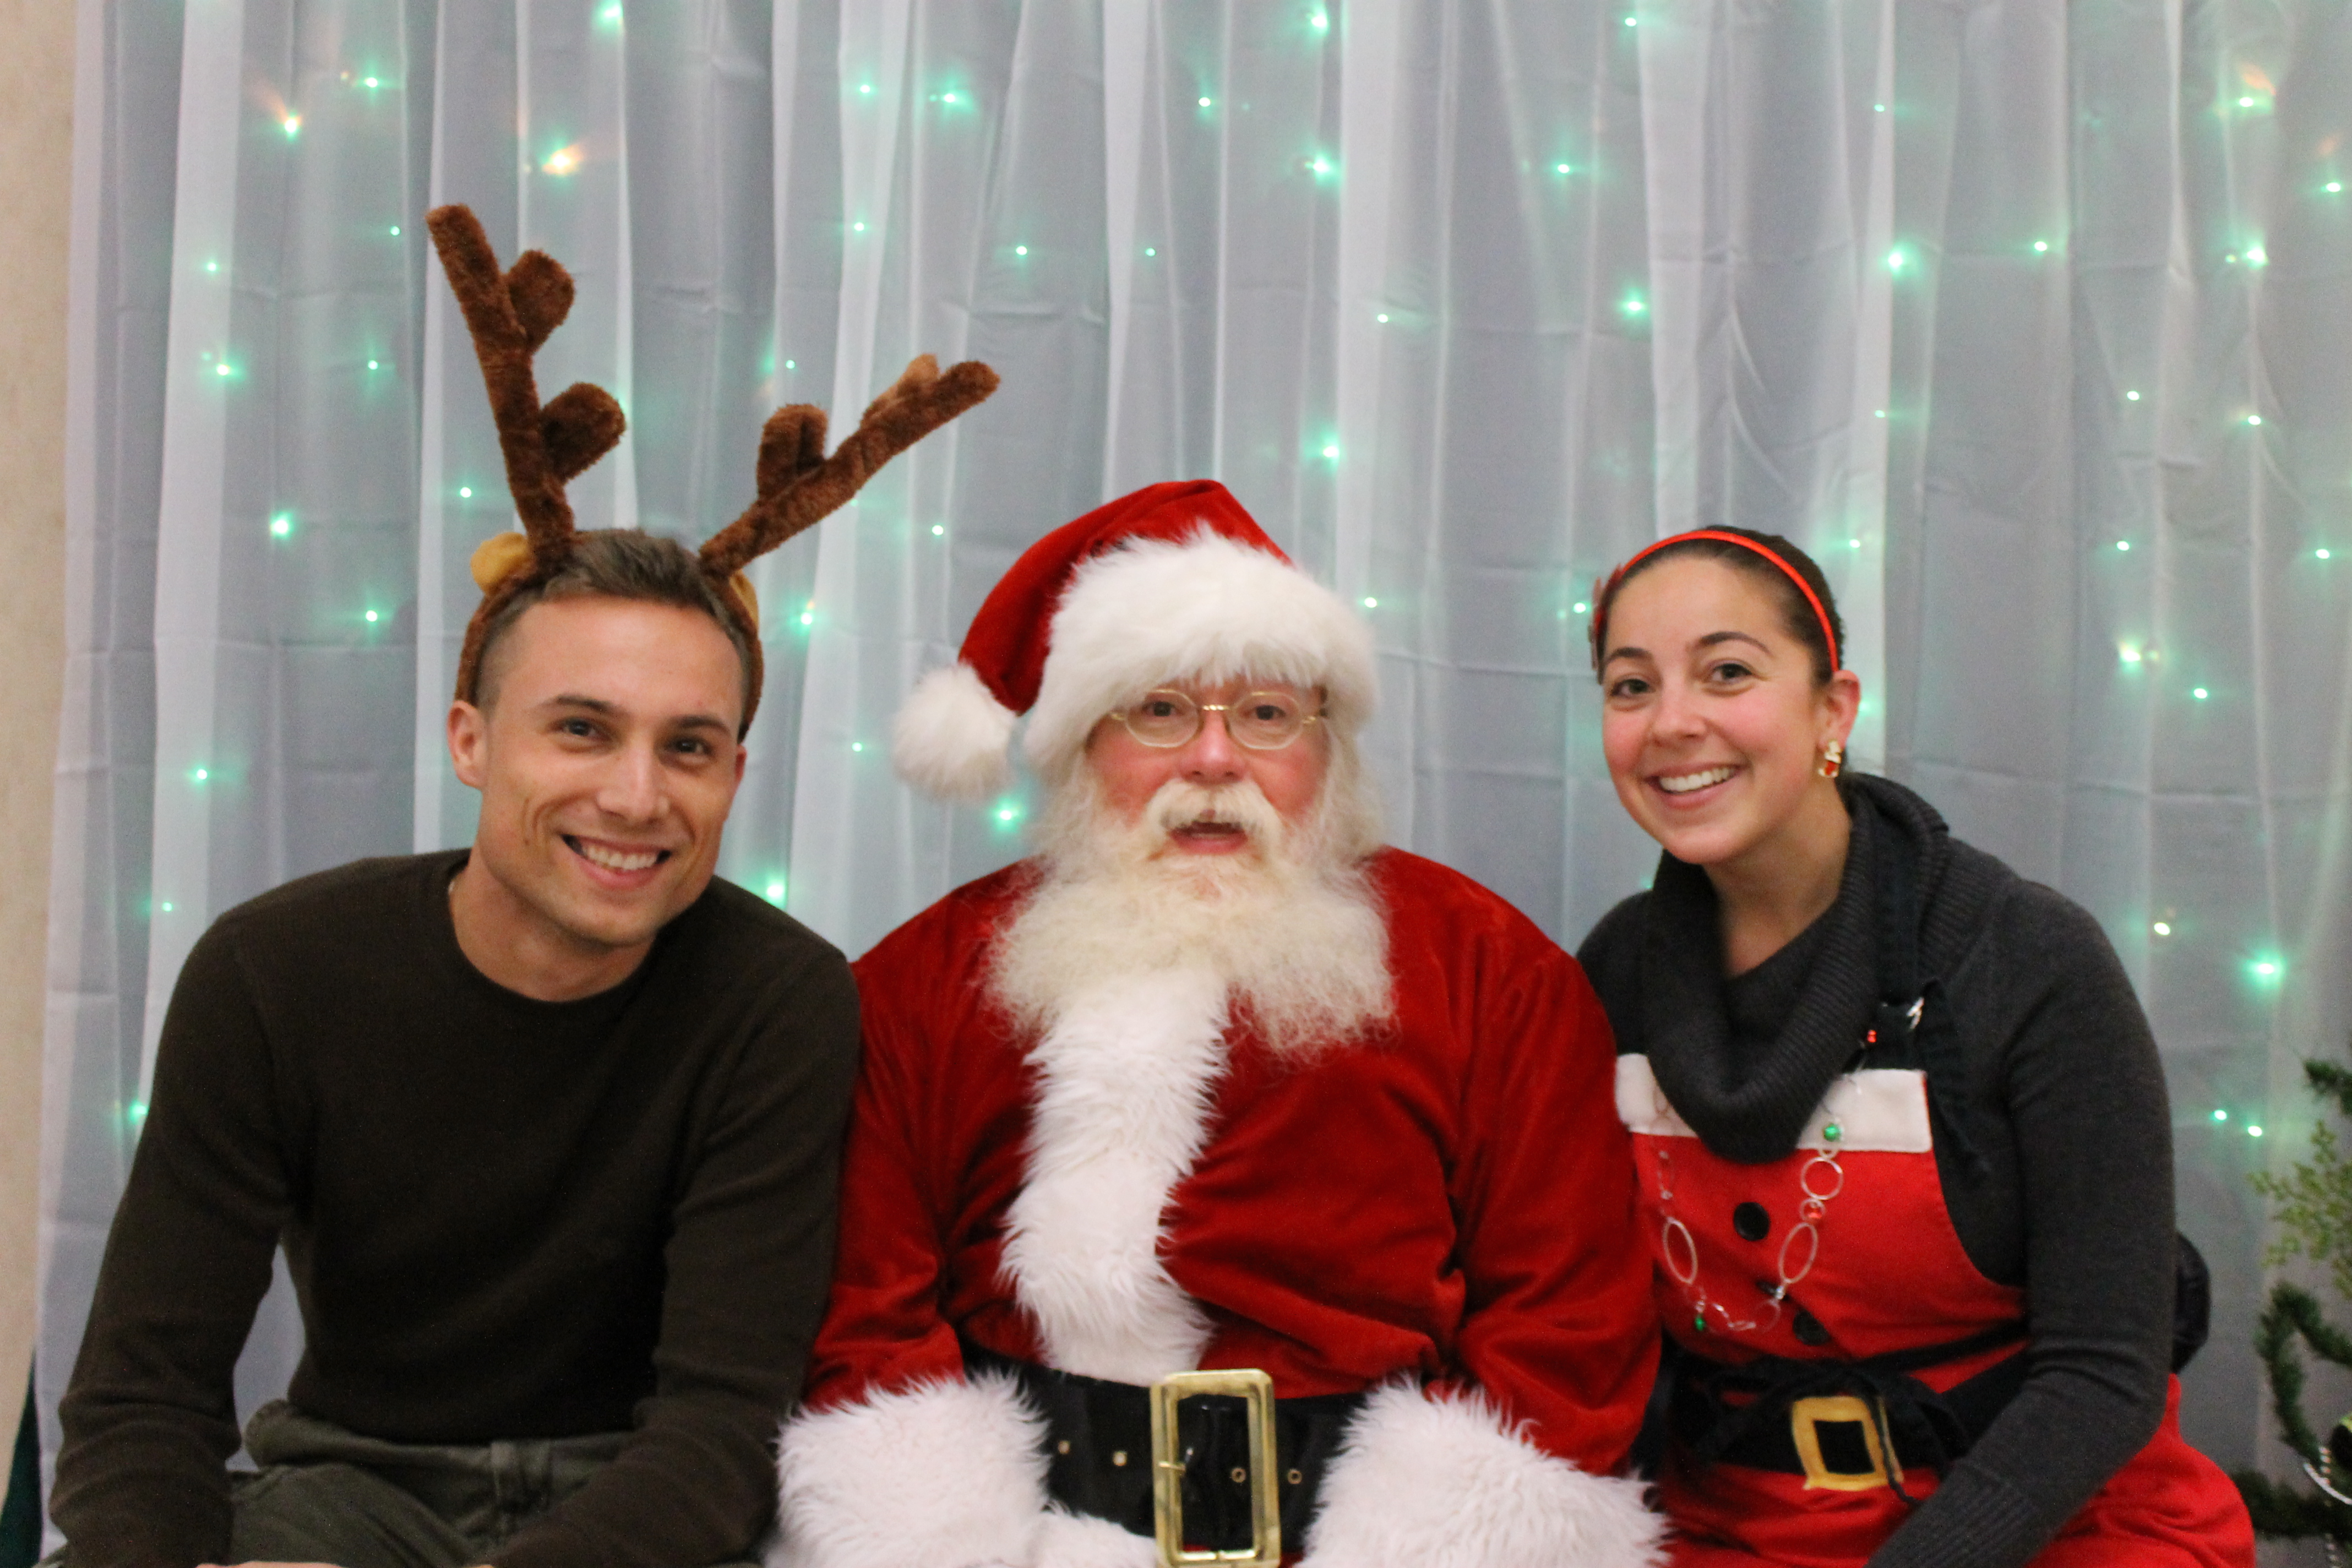 Photo of Santa and a man and woman